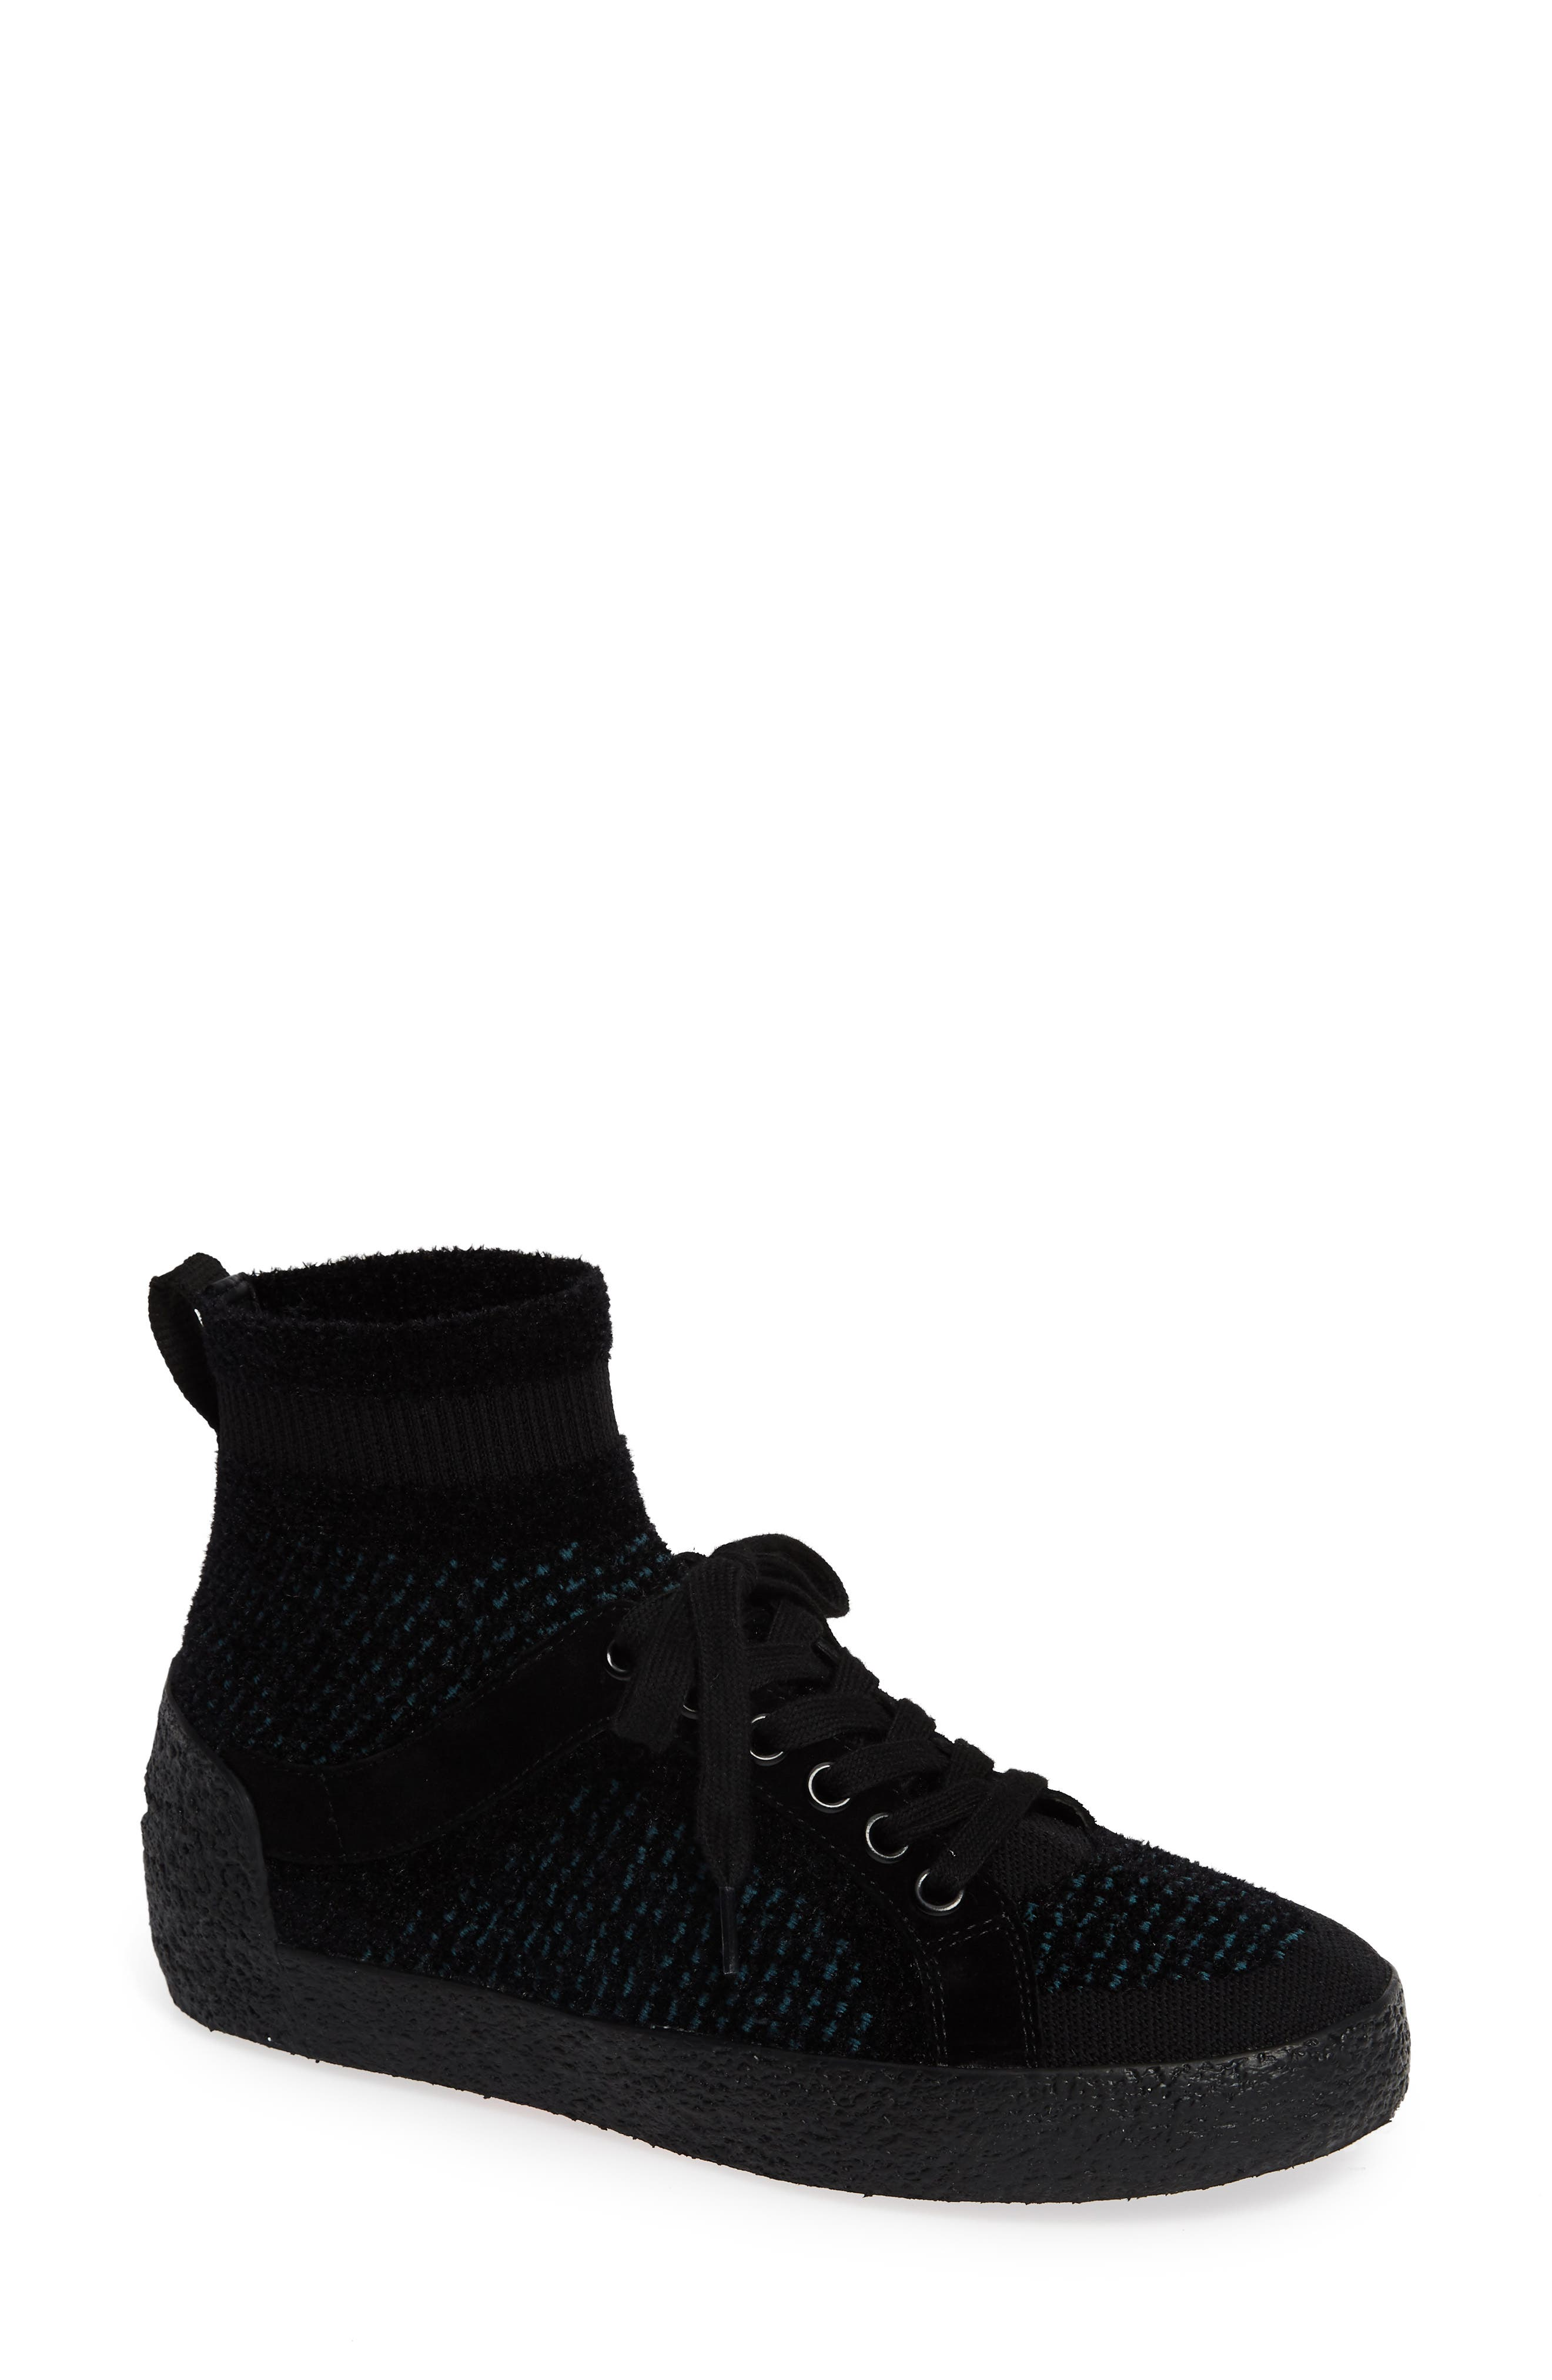 Ash High Top Sneaker